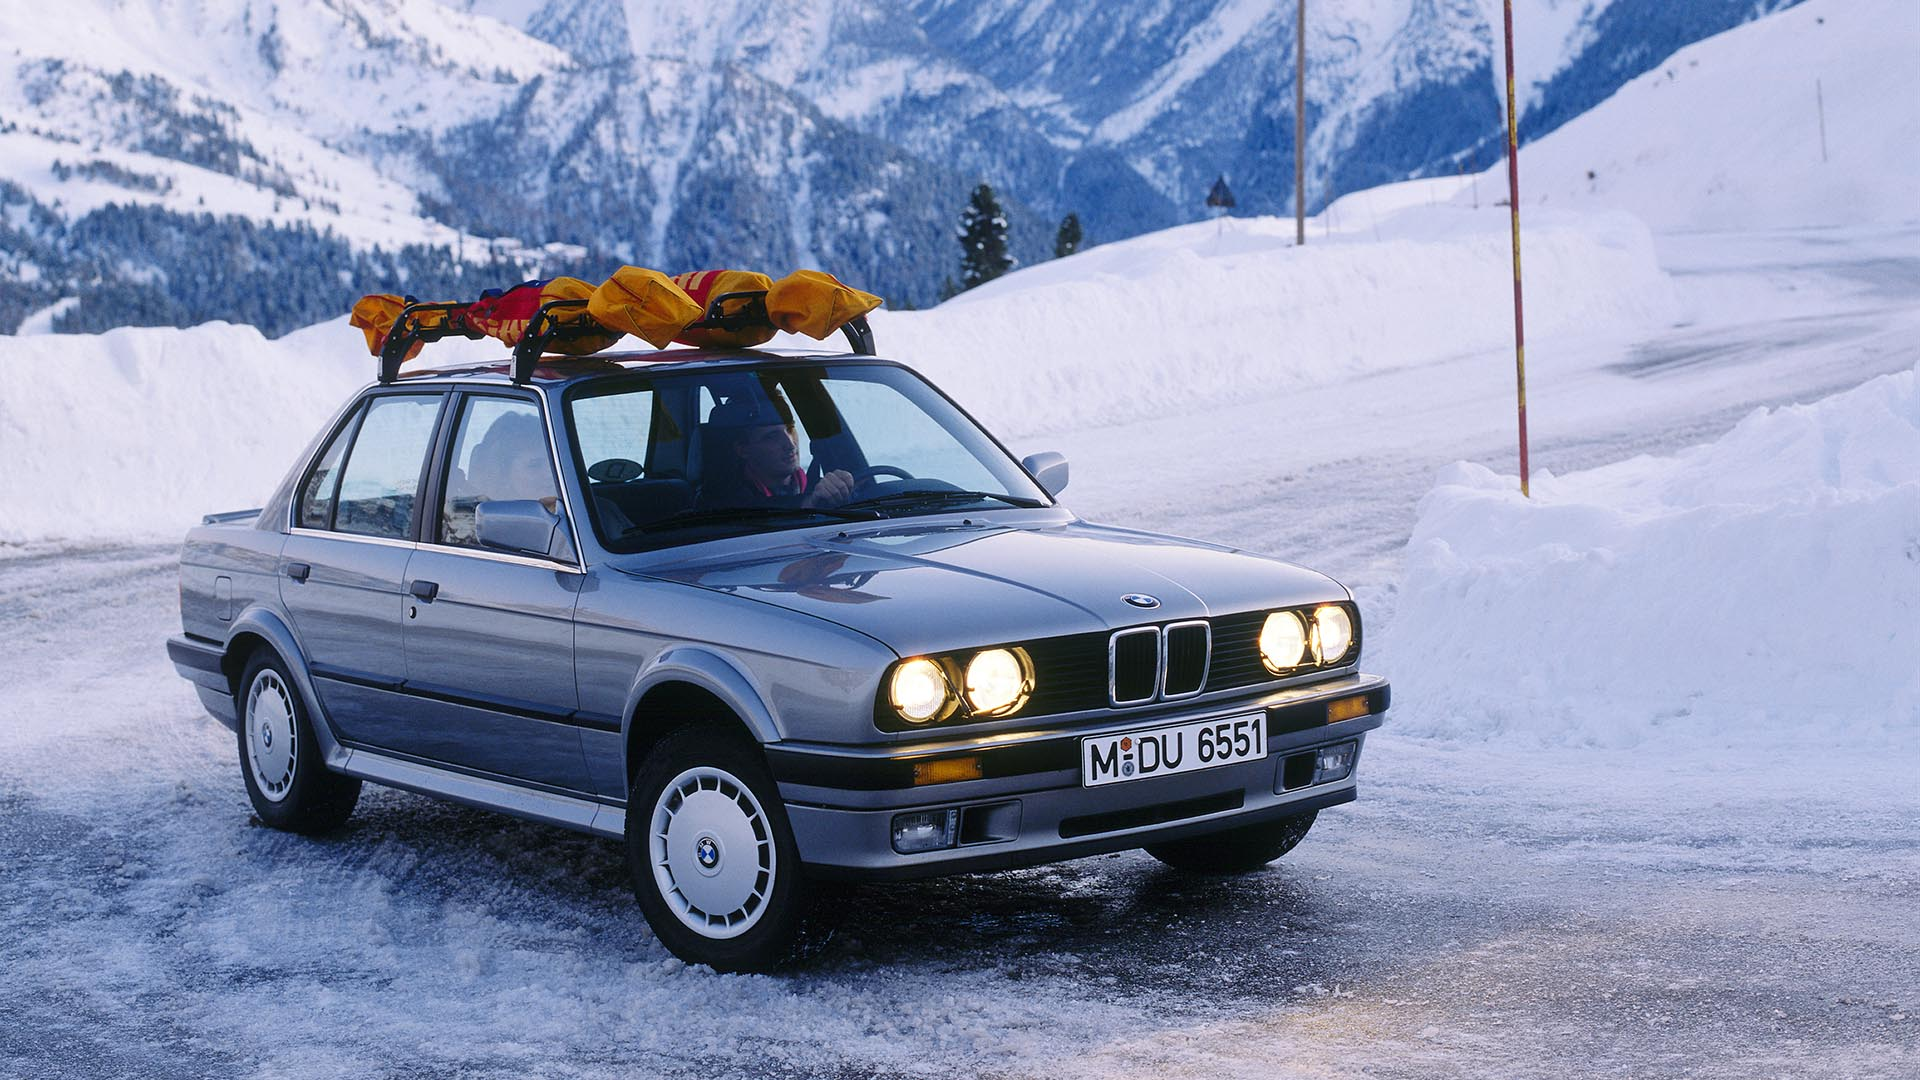 7 Of The Best Used All-Wheel Drive Cars That Aren't Audis